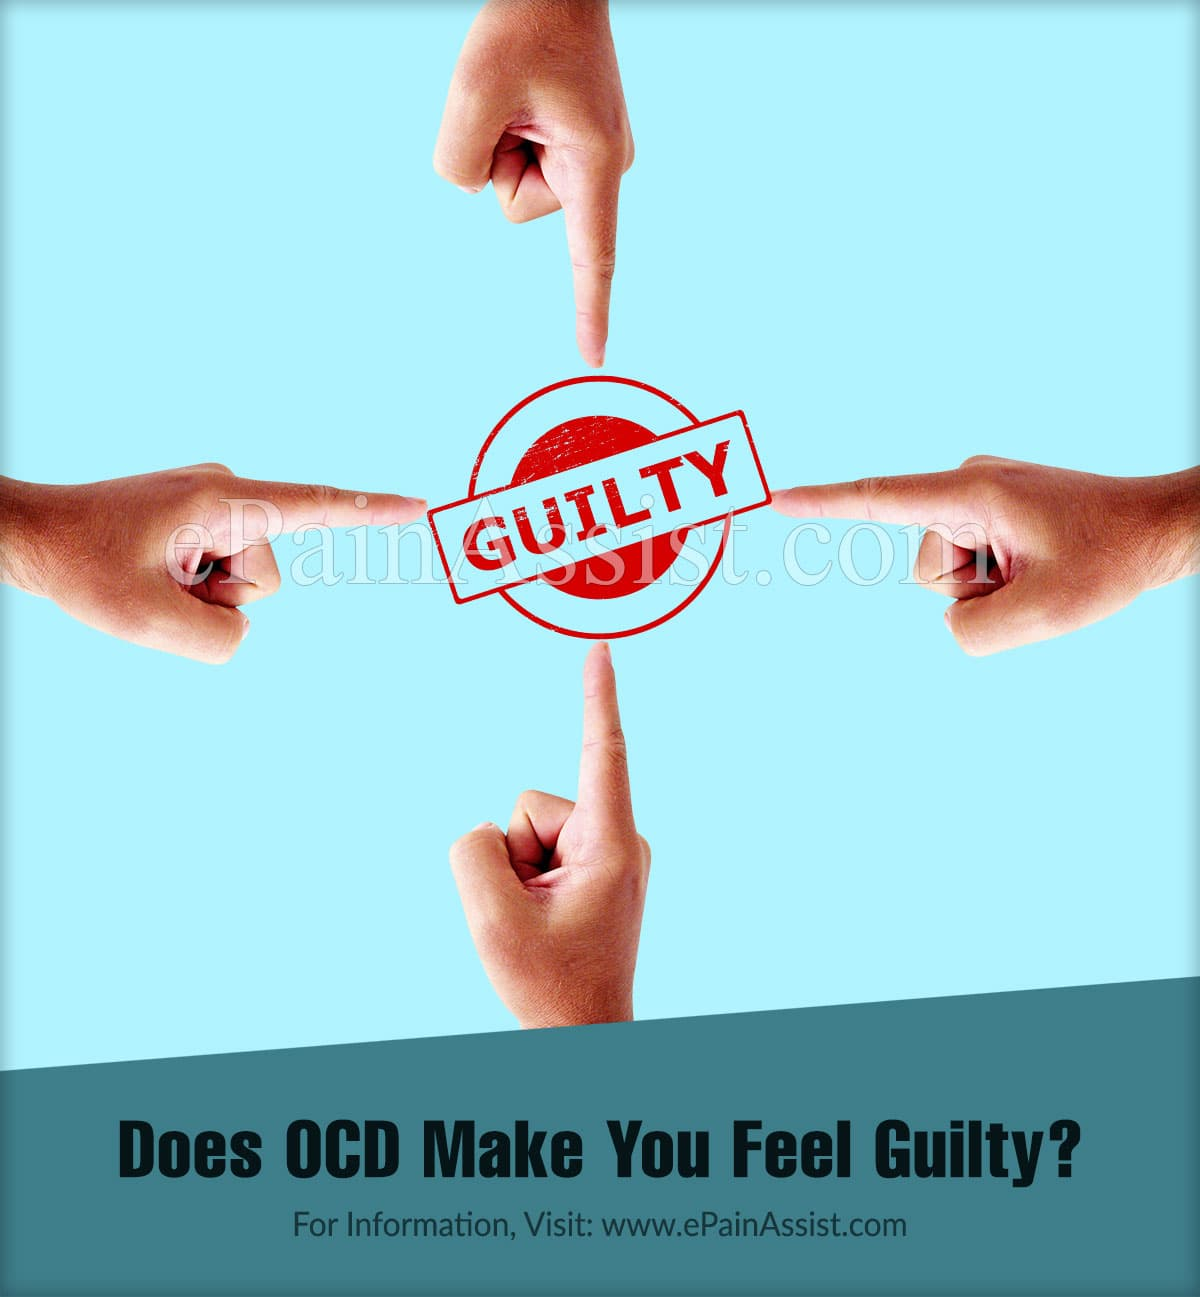 Does OCD Make You Feel Guilty?